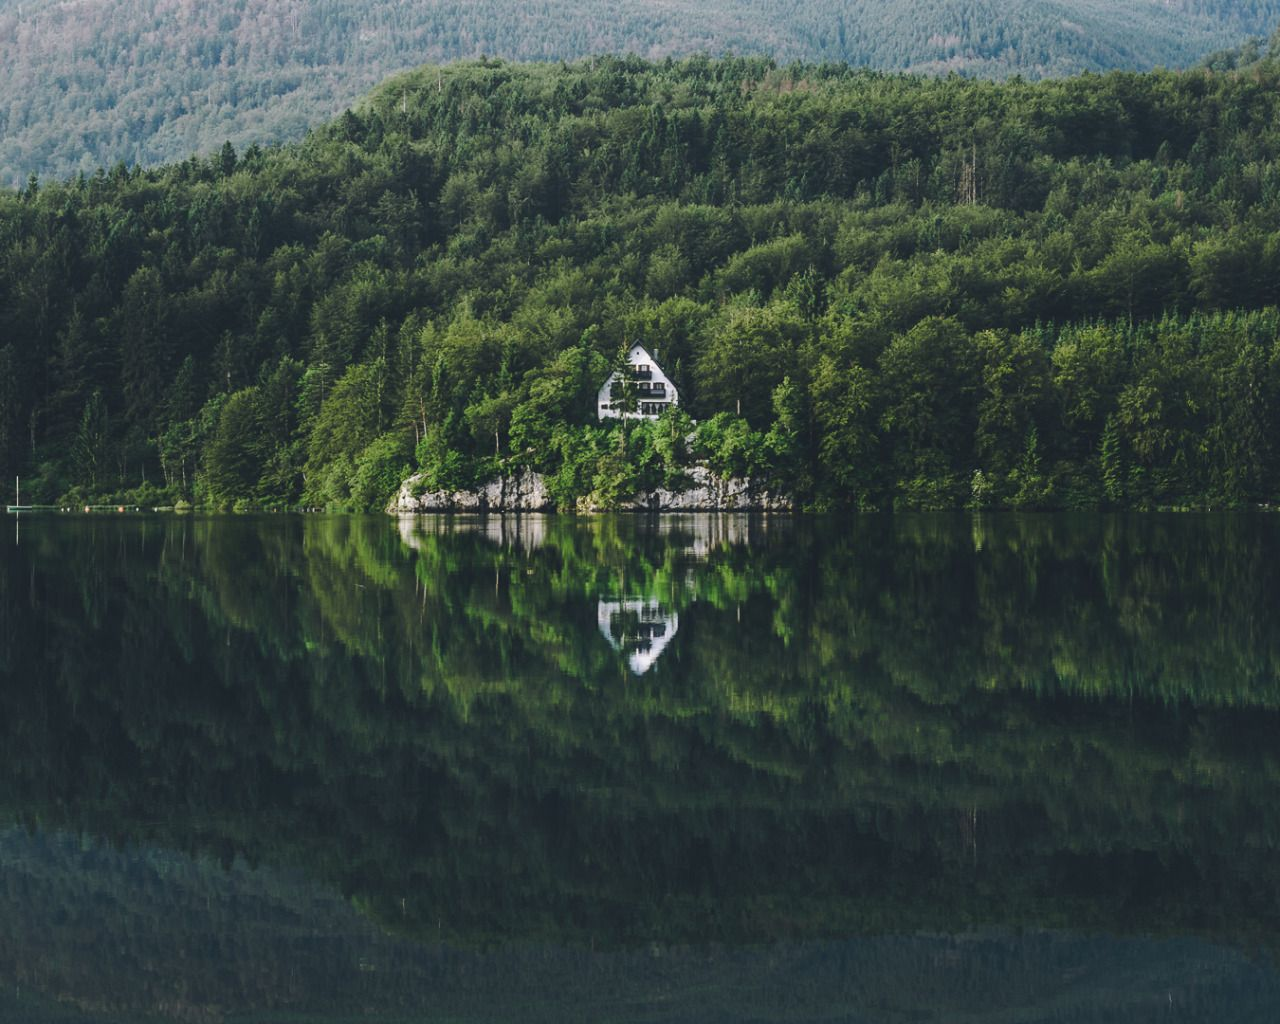 merlinkafka:  Nestled in the forest on the banks of Lake Bohinj I found this little retreat.